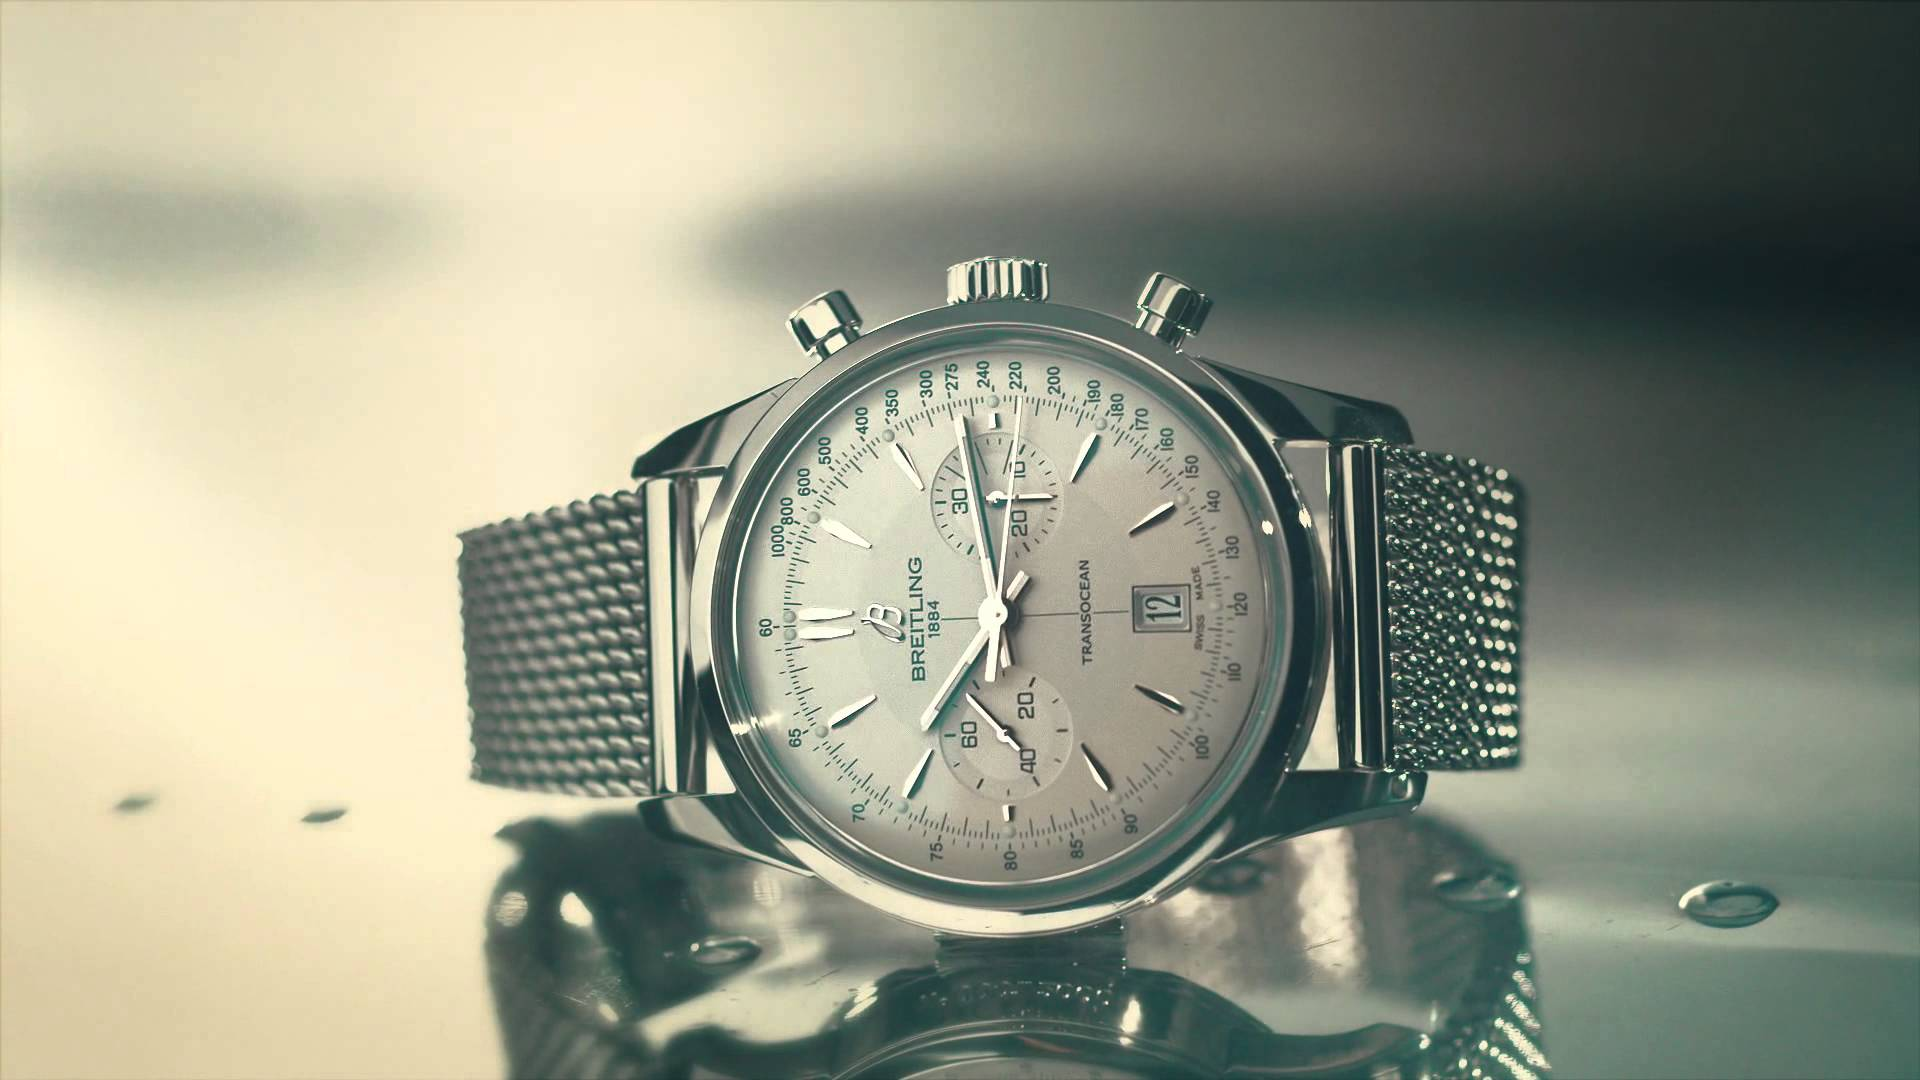 aa6698d032b Top 10 Best Breitling Transocean Watches - [2019 Reviews]